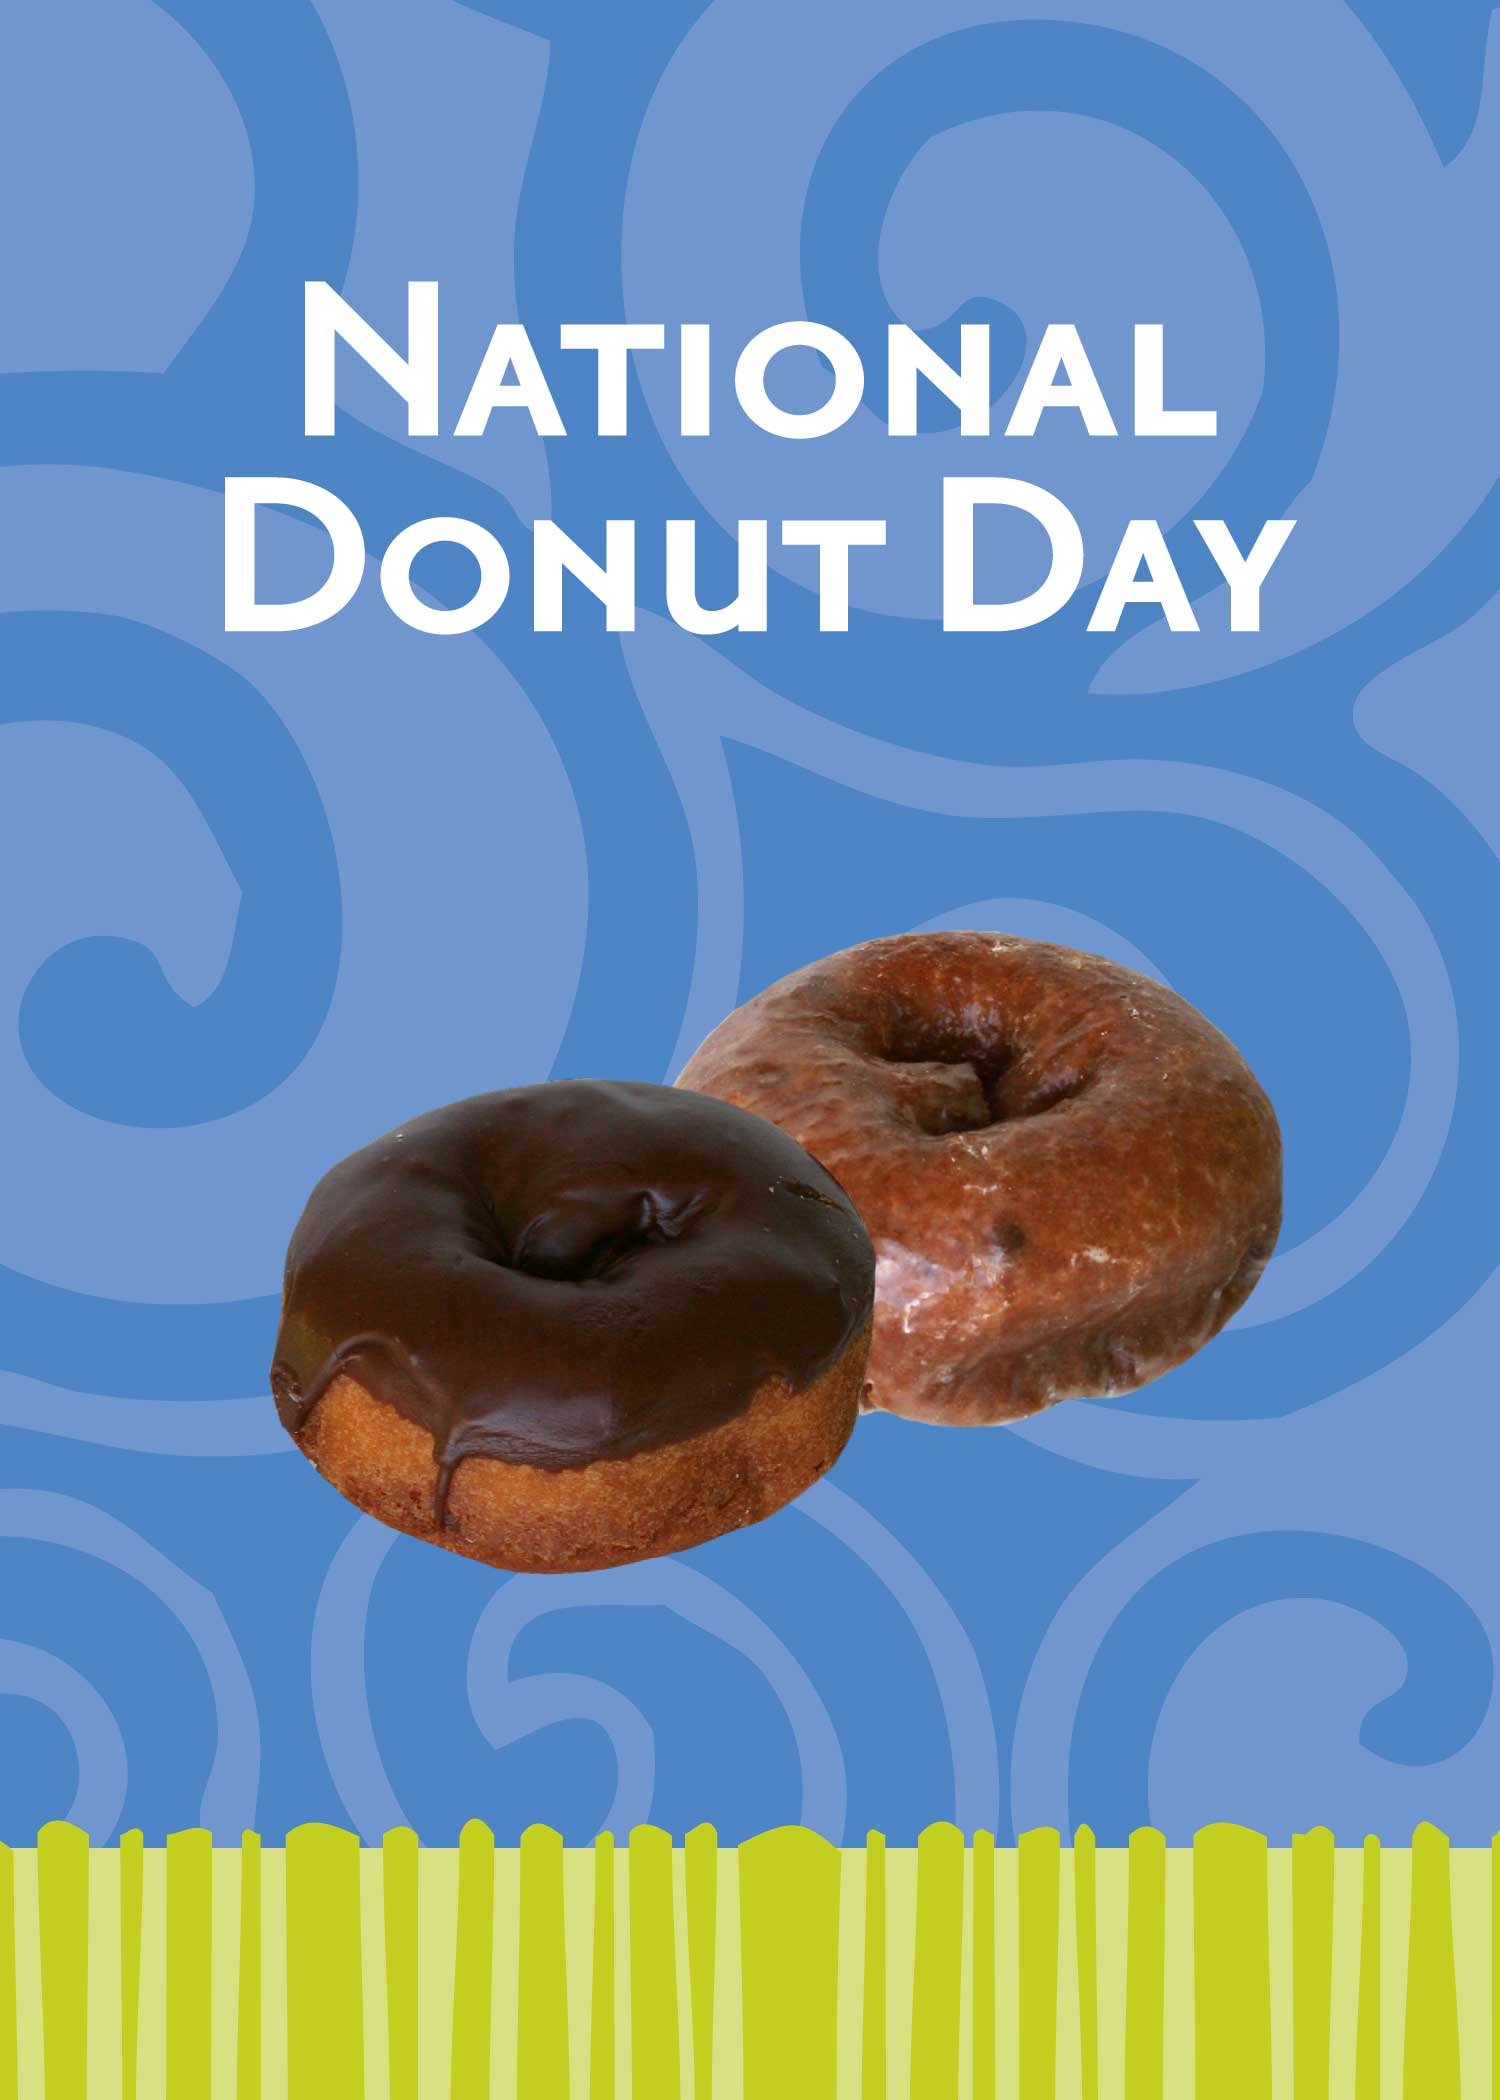 National Donut Day Background